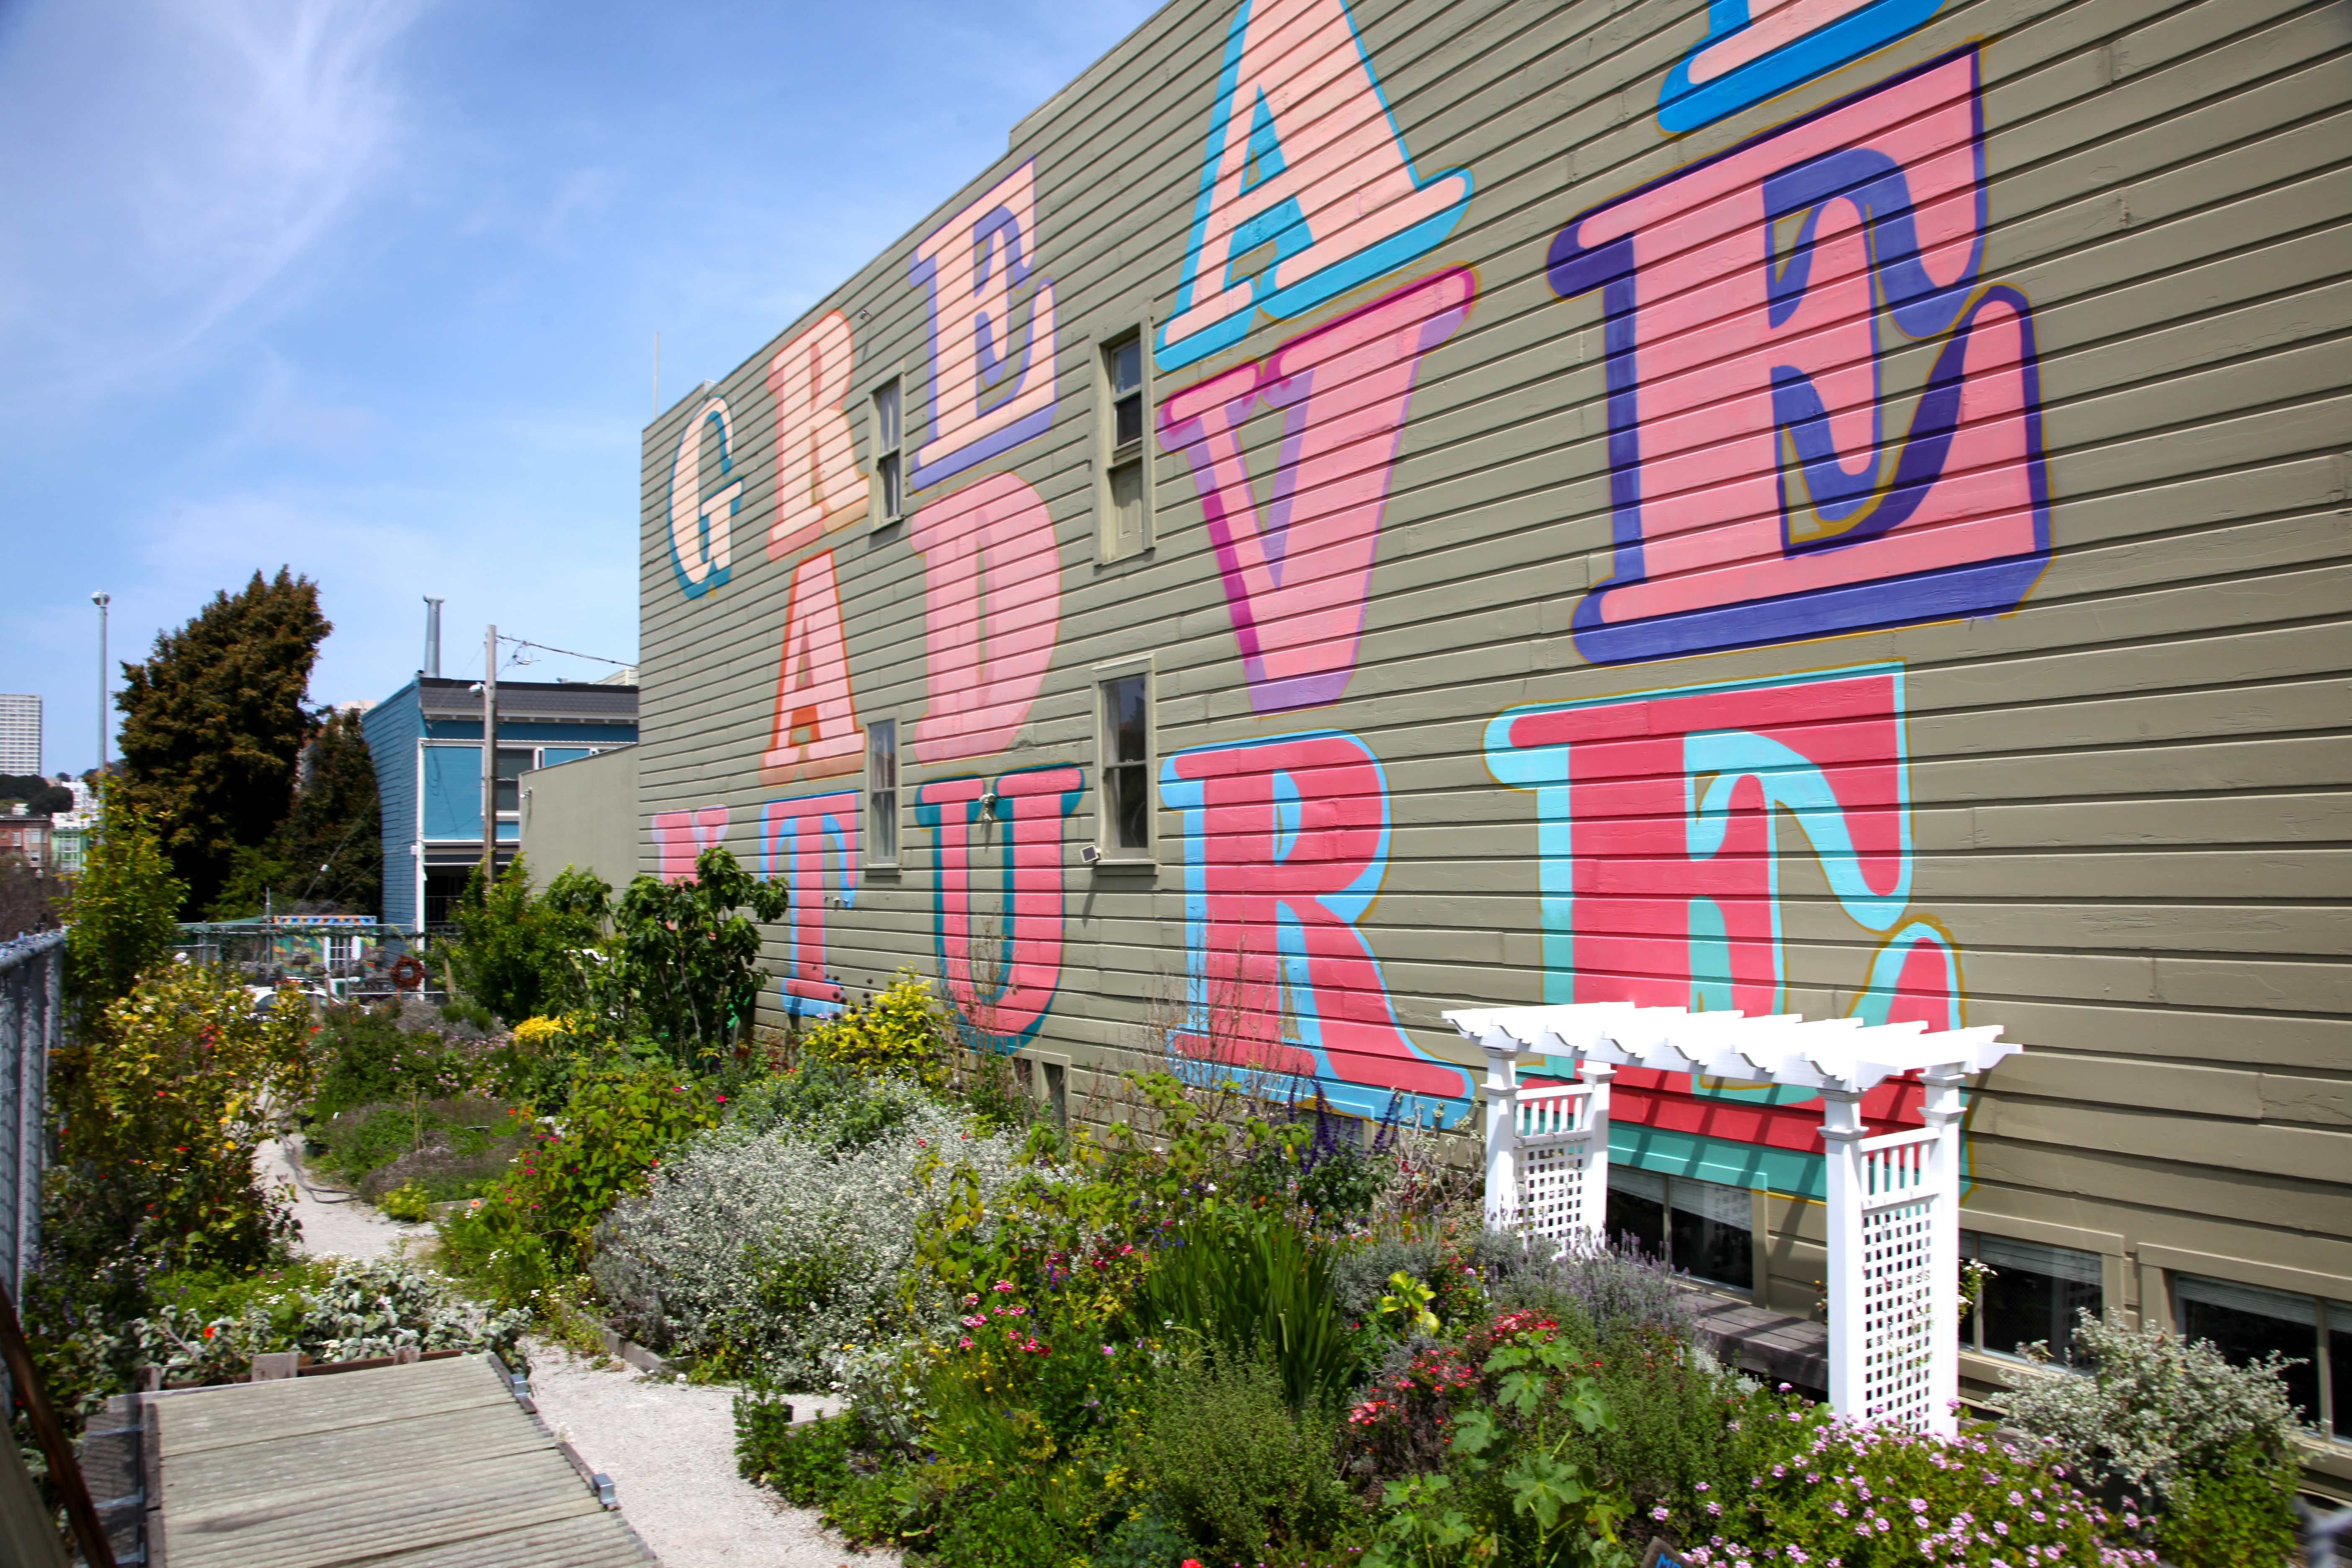 Exterior of Hayes Valley building with urban garden.